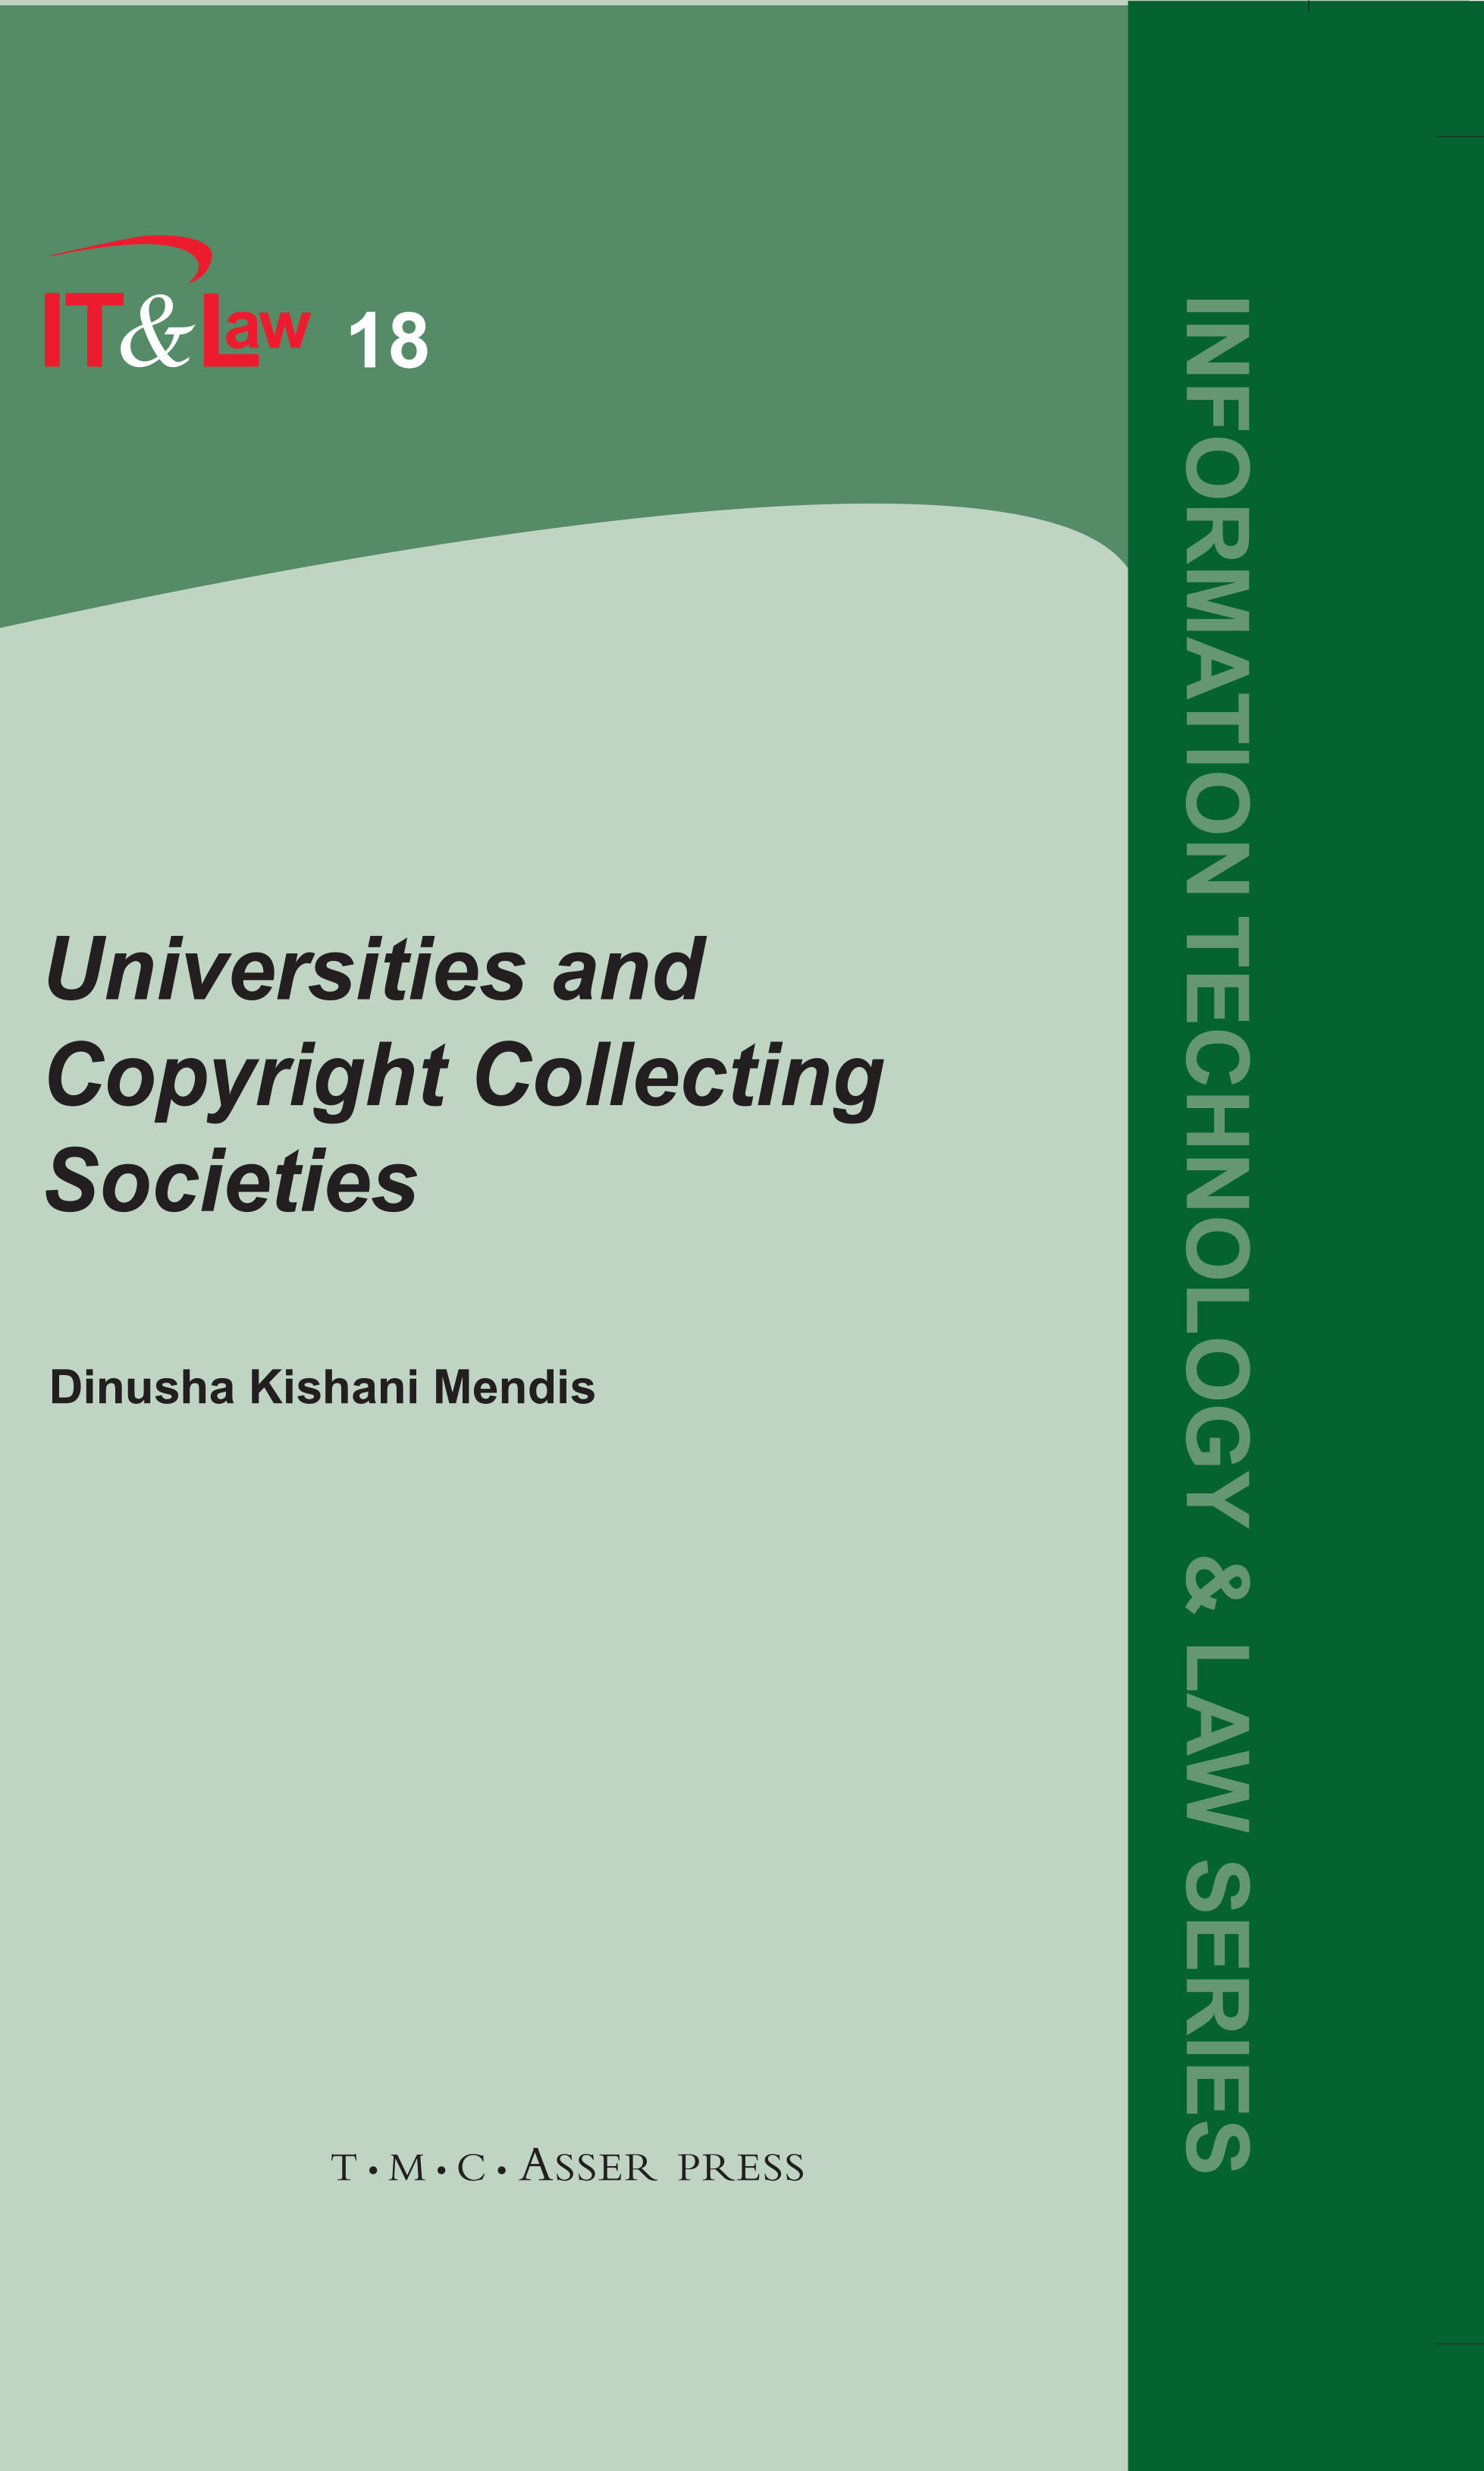 Universities and Copyright Collecting Societies